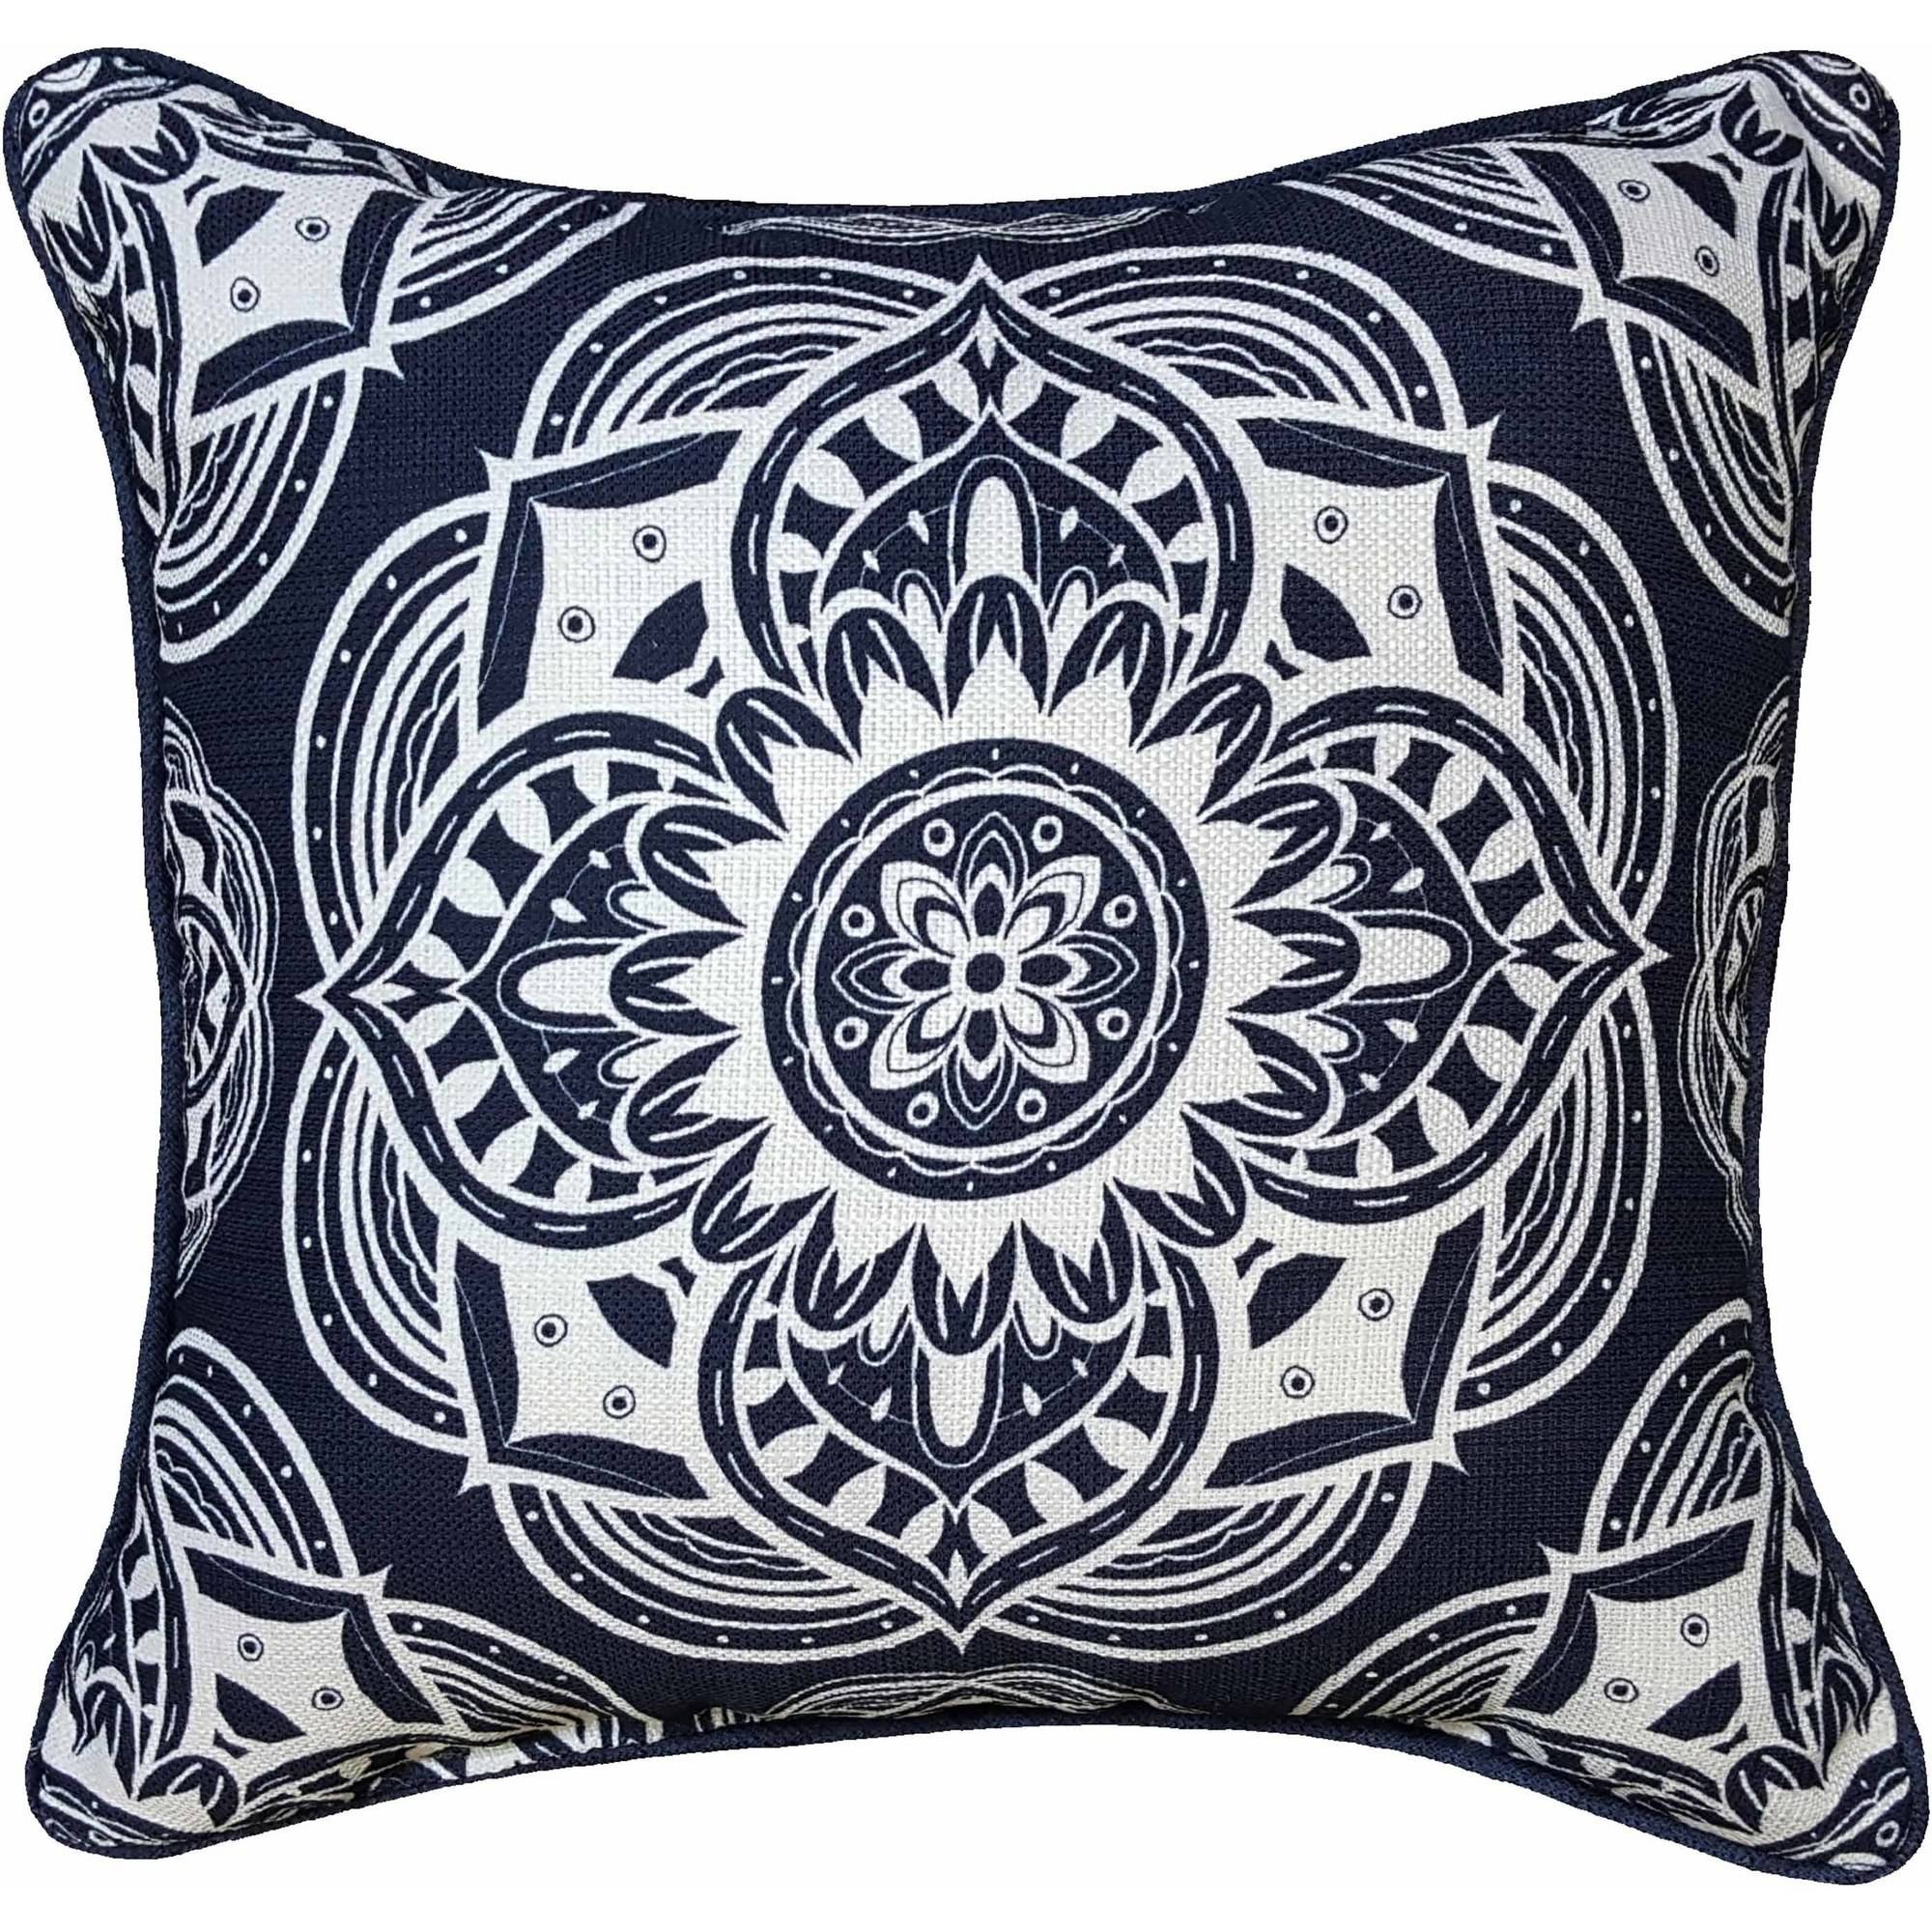 Mainstays Reversible Print Decorative Pillow